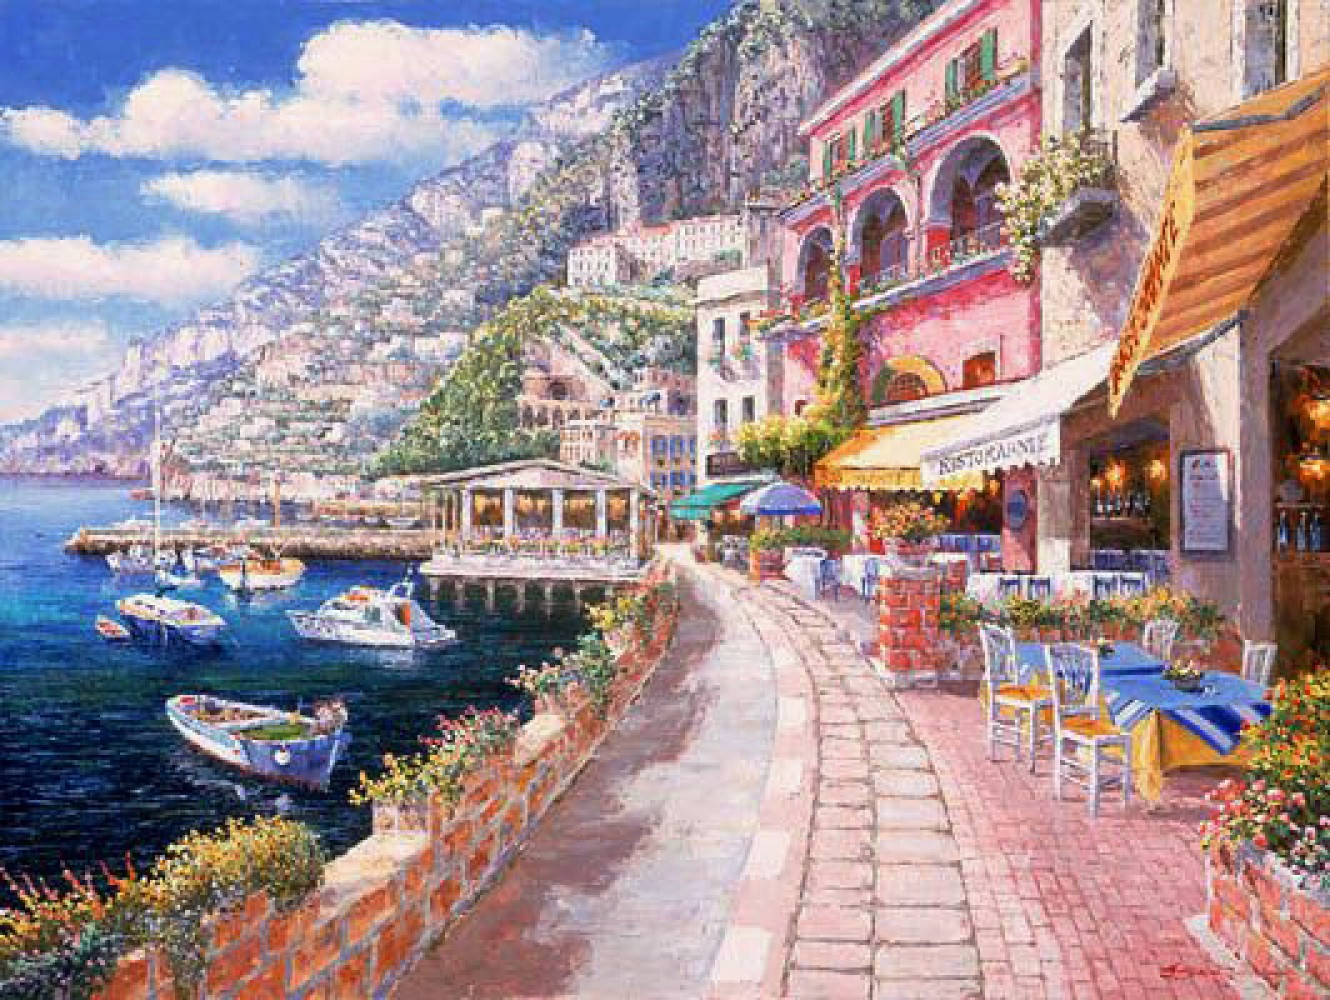 Dockside Amalfi 2003